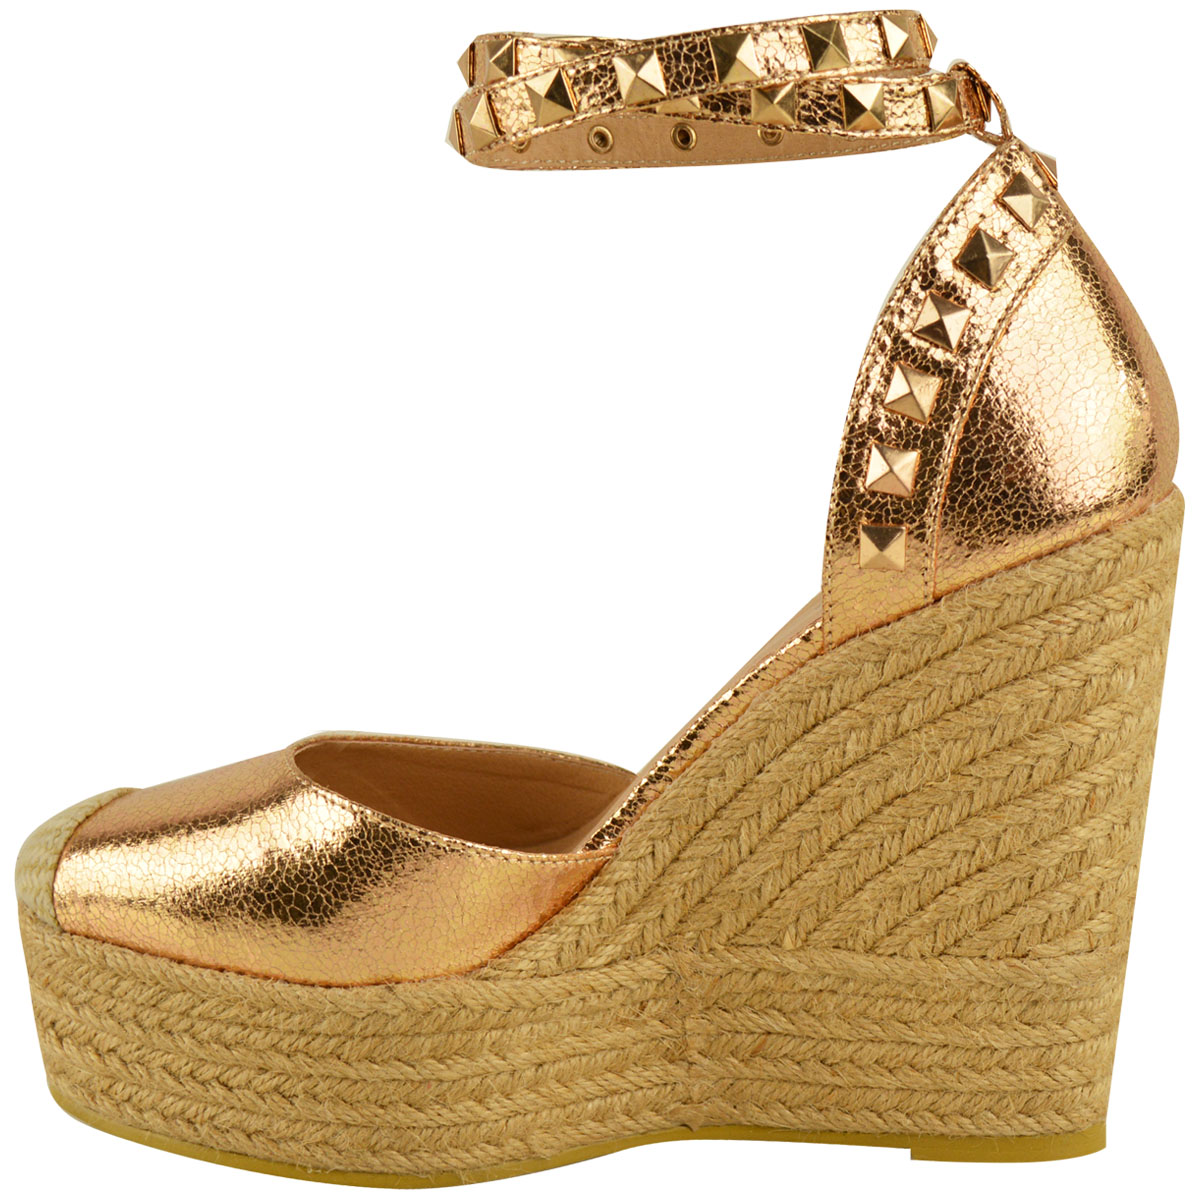 New-Womens-Stud-Espadrille-Wedge-Summer-Sandal-Ladies-Rose-Gold-Party-Shoes-Size thumbnail 24